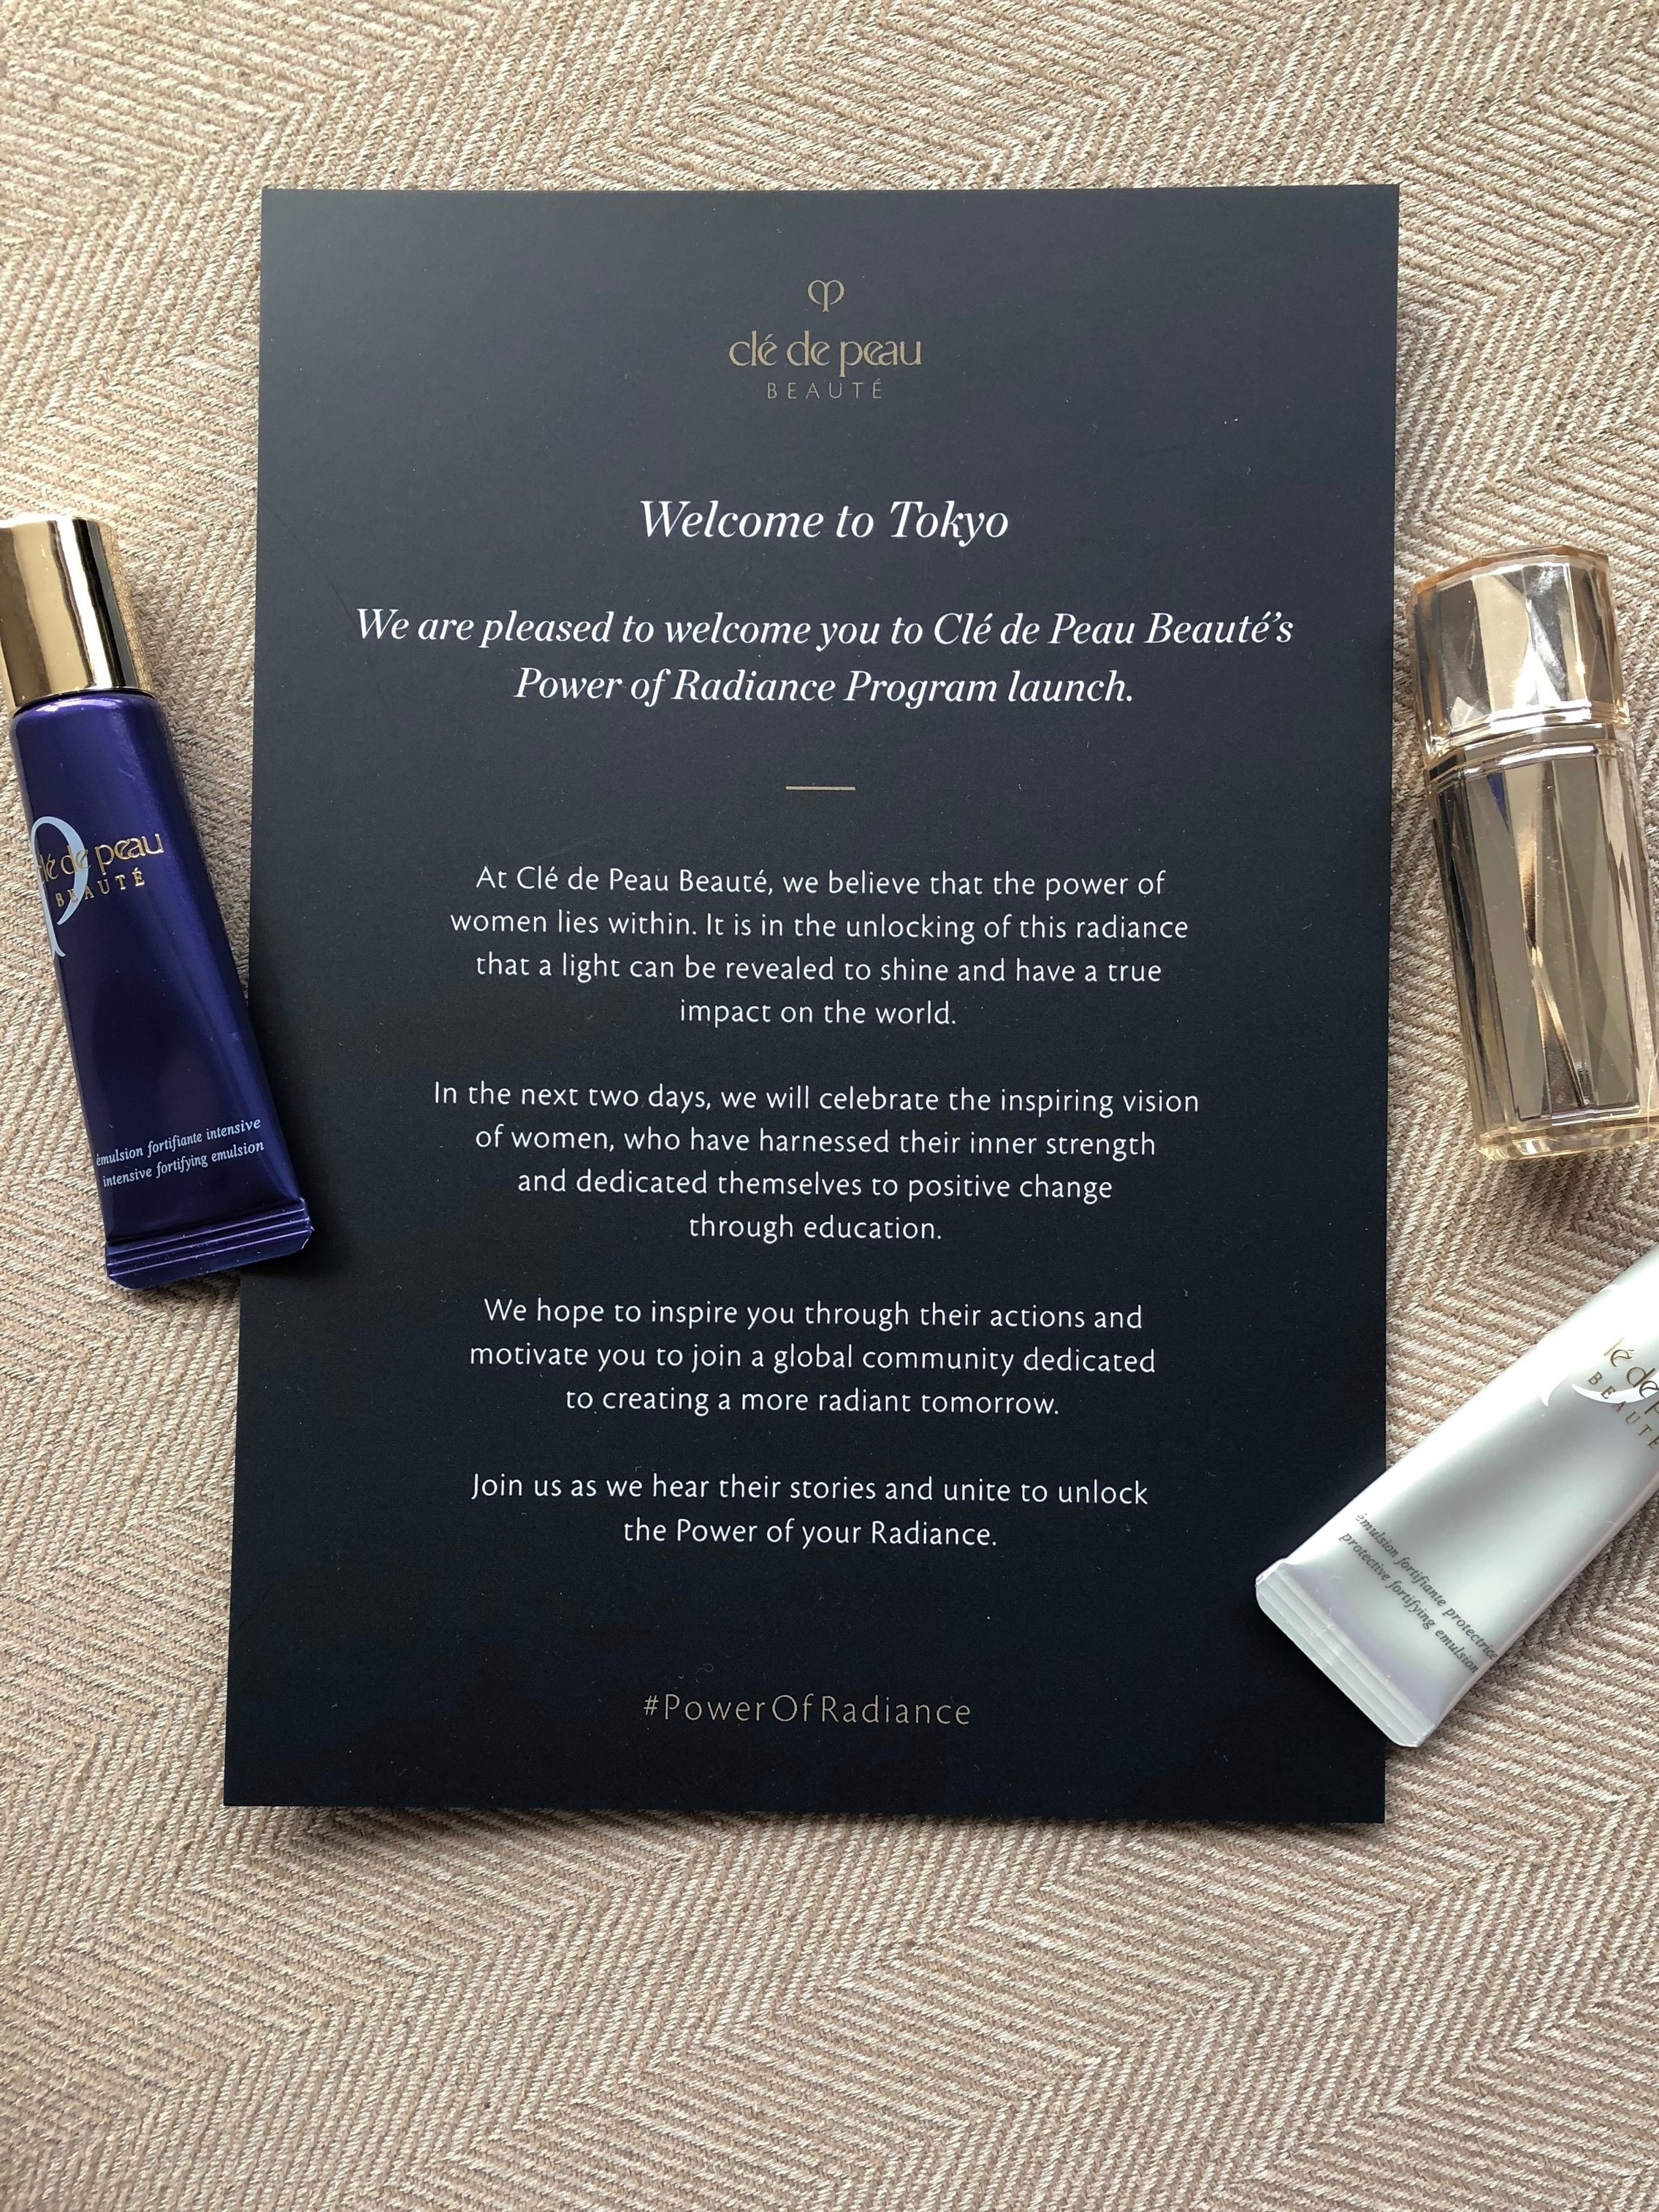 Travel minis of Carlene's skincare favourites from Clé de Peau, along with the event invite